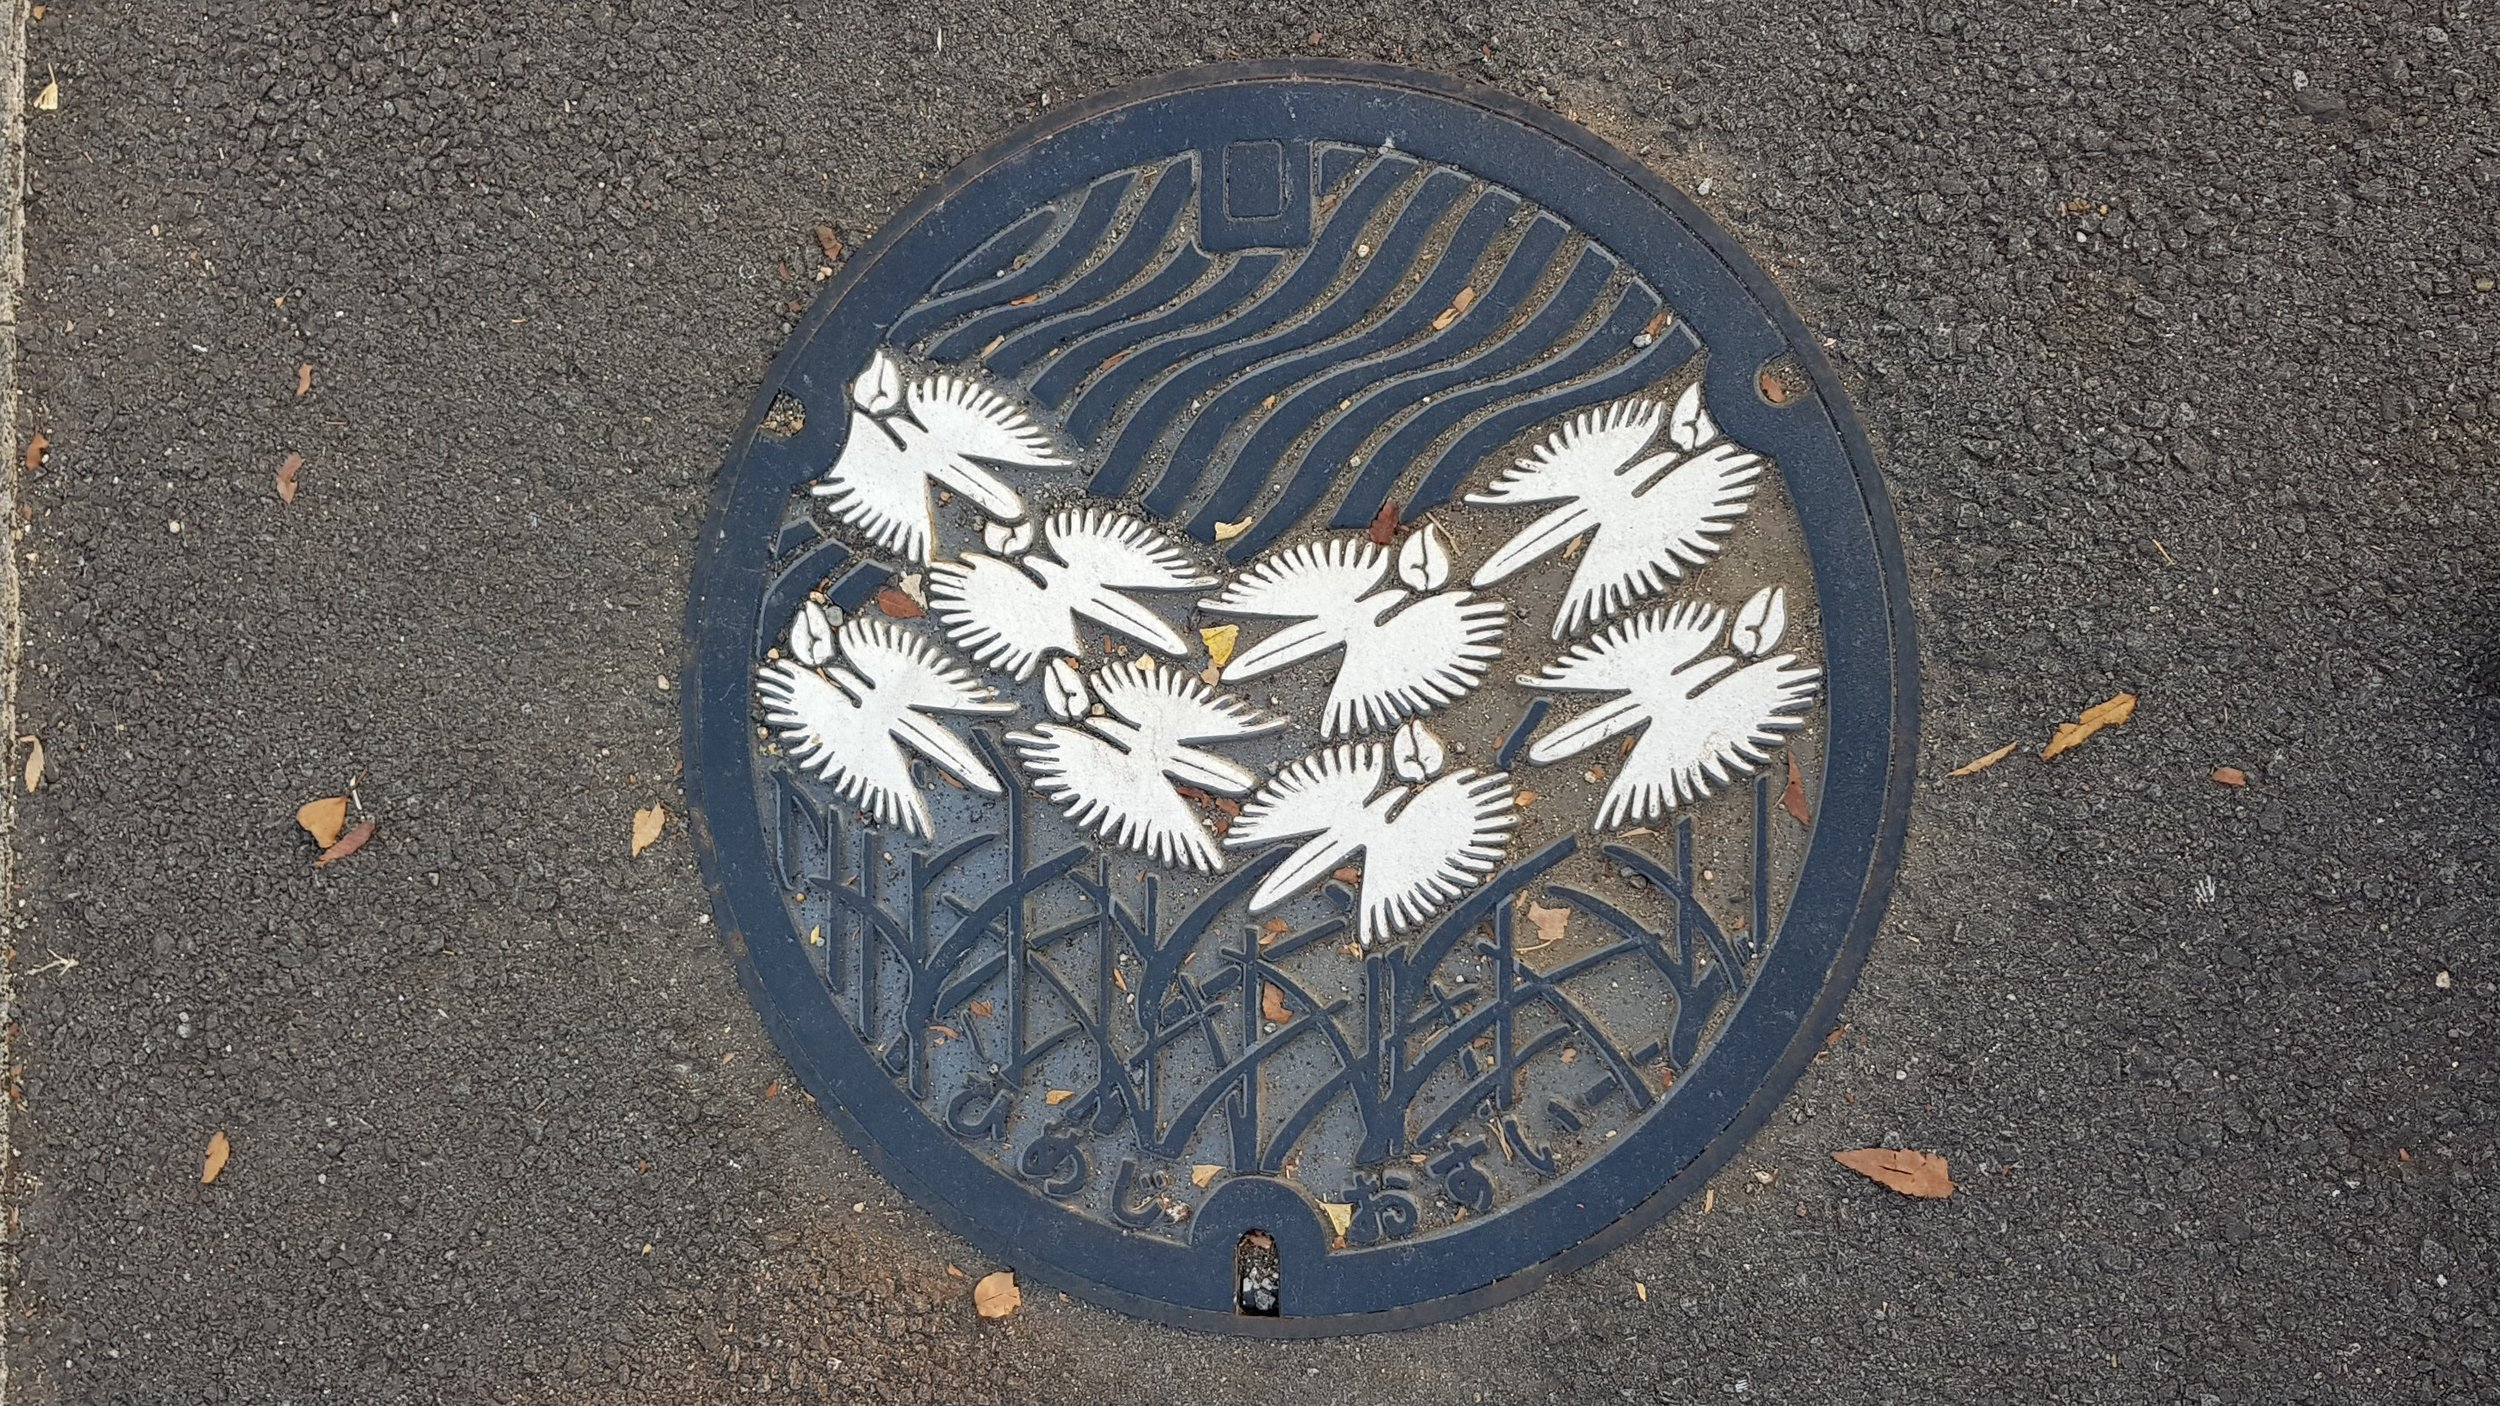 Even the man hole covers have the white heron emblem